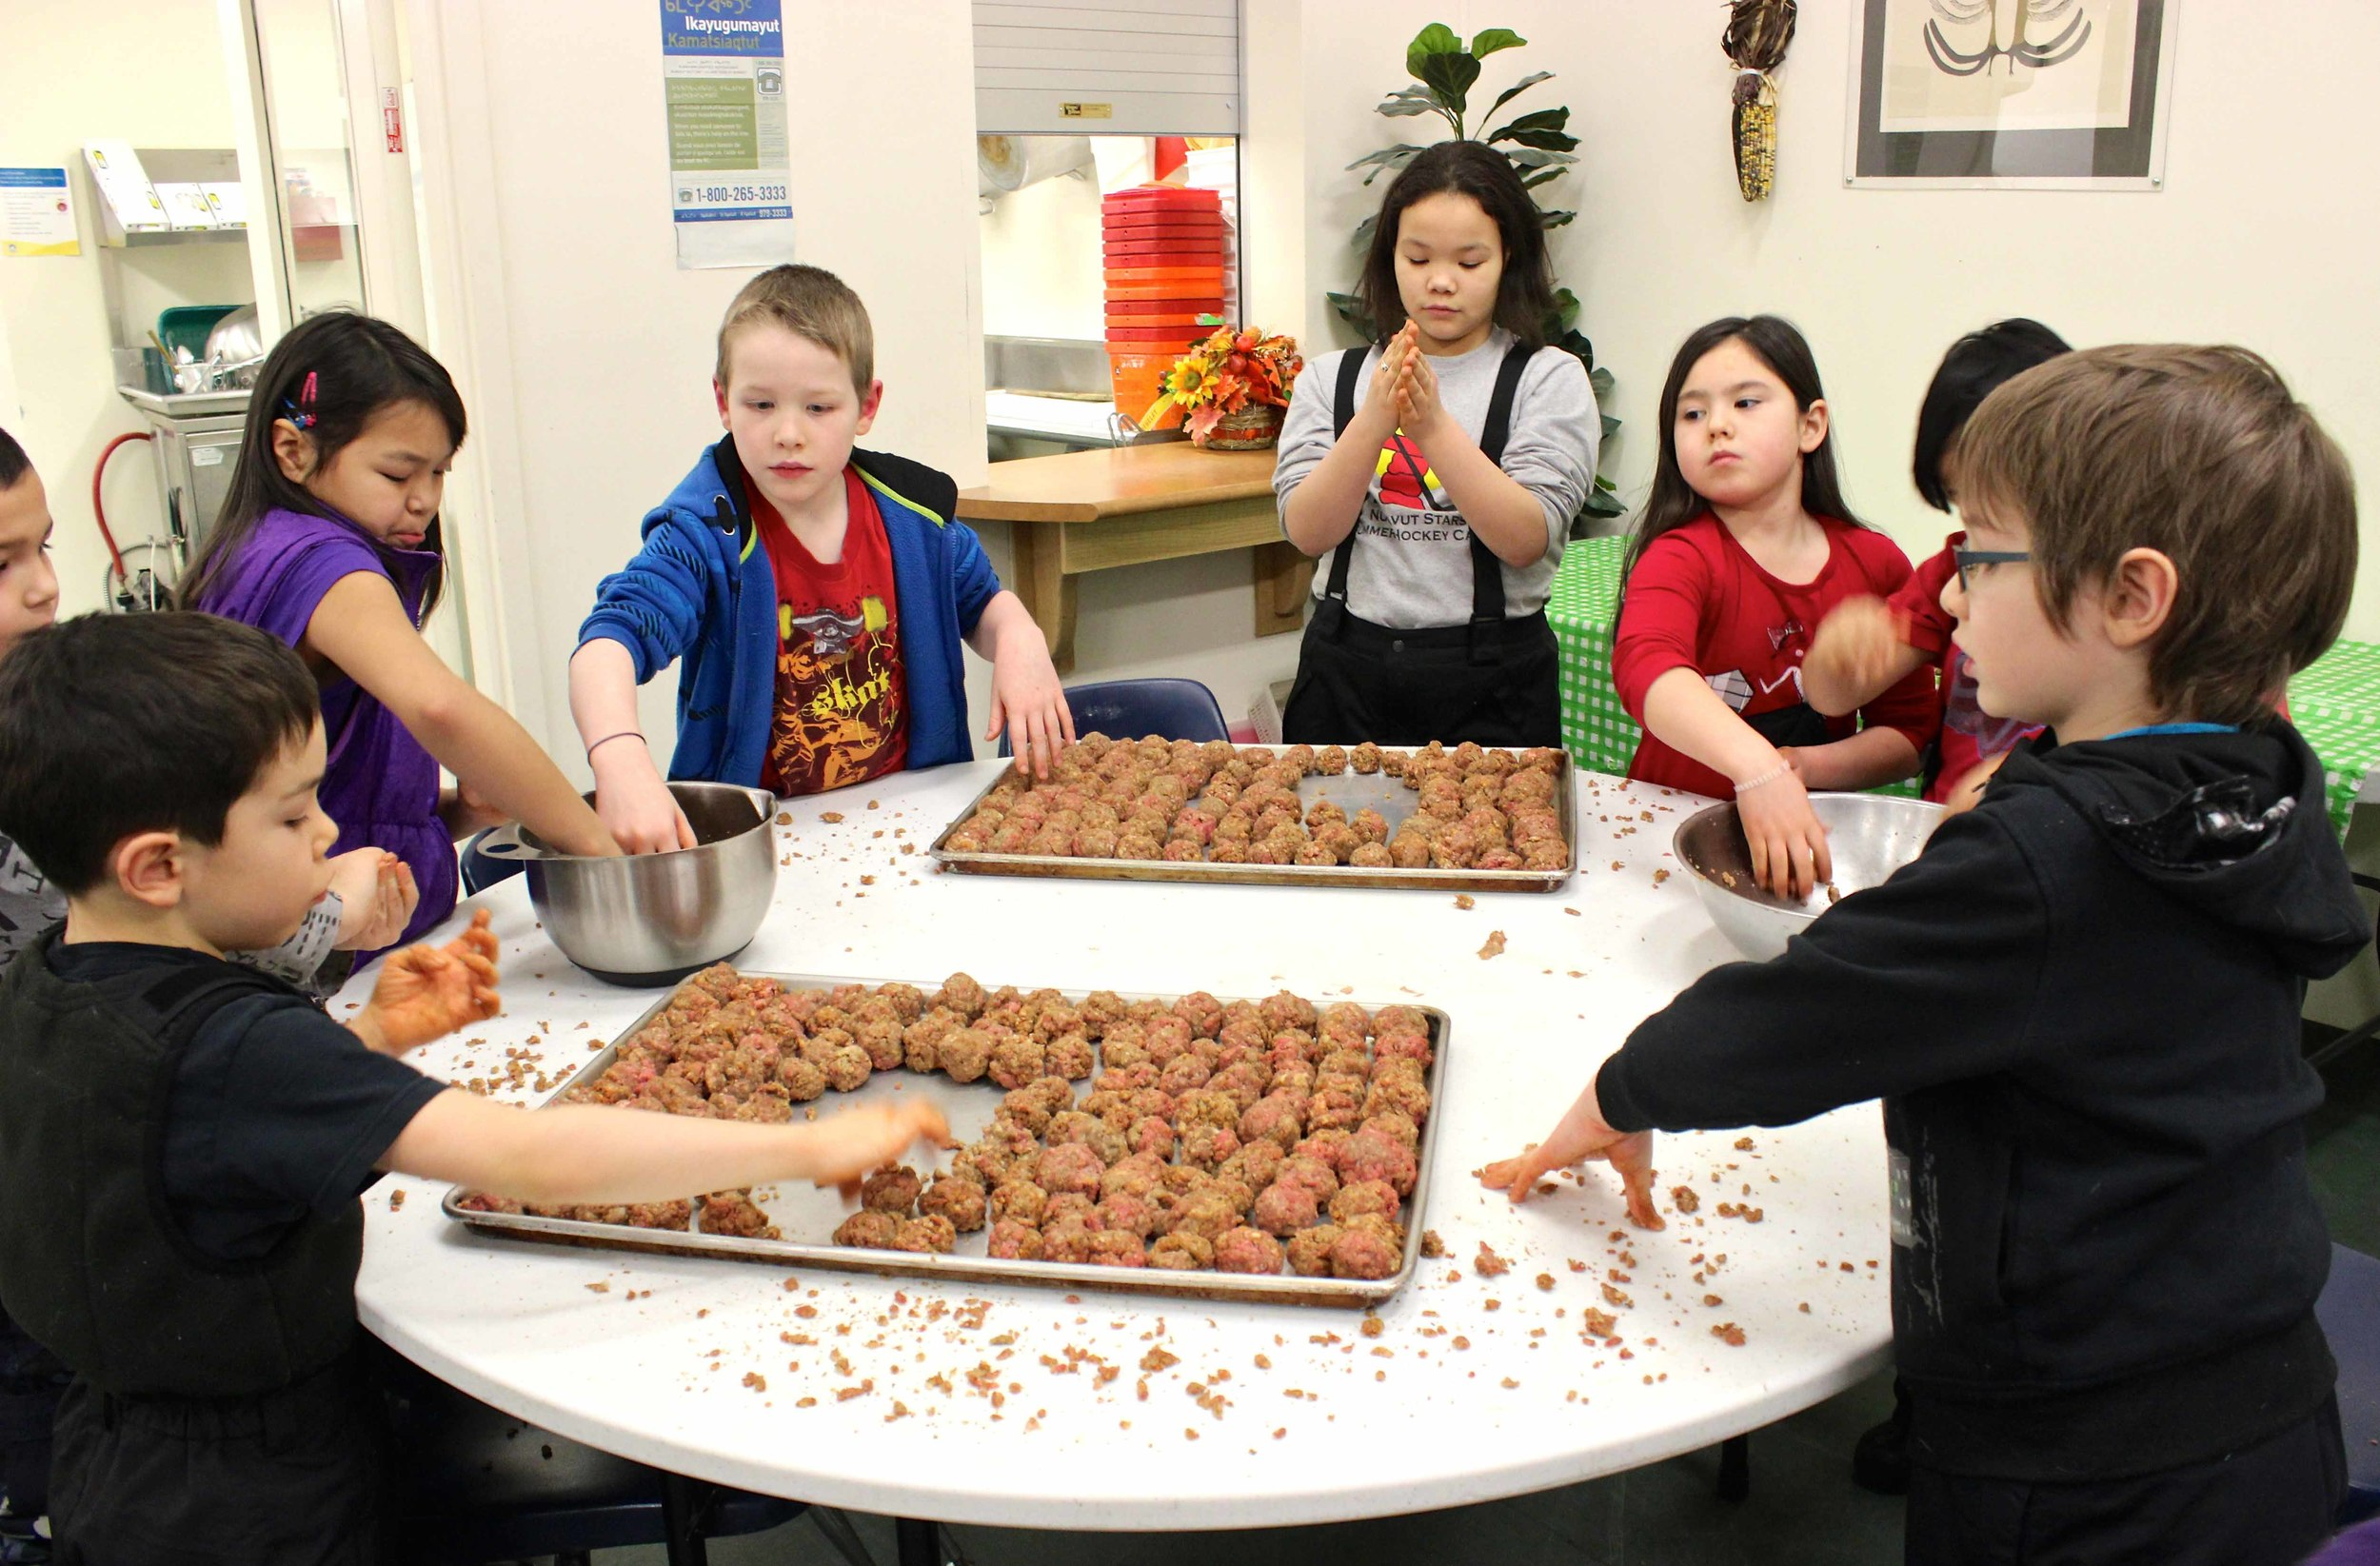 Students from Nanook Elementary School cooking program busy preparing almost 700 (!!) meatballs to serve for dinner. Photo by Sarah Brandvold.